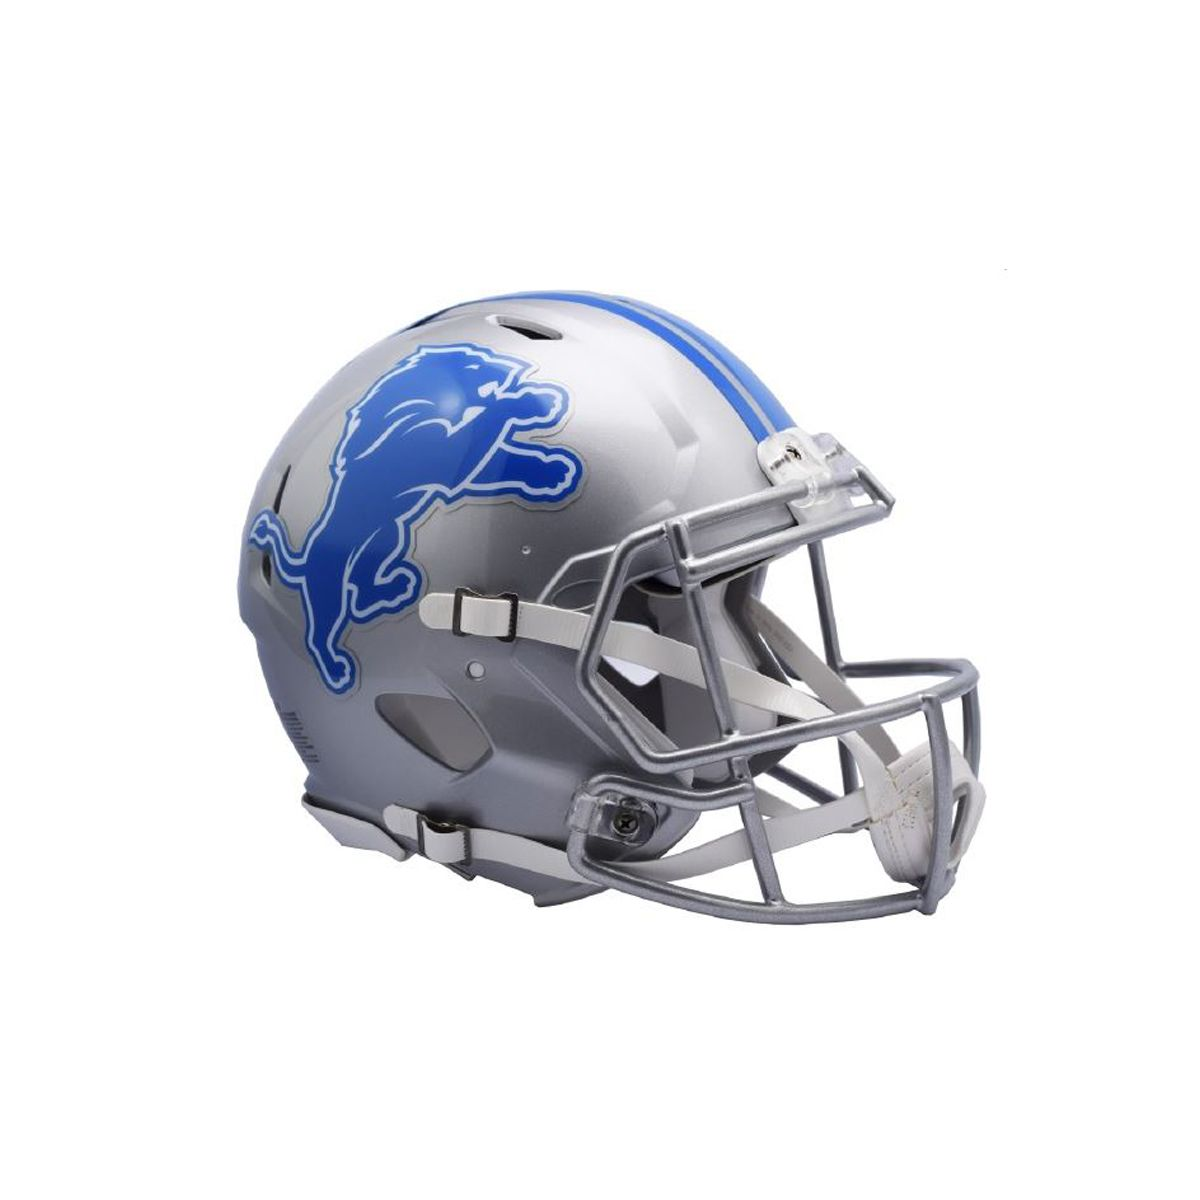 Helmet Mini Replica - $39.99